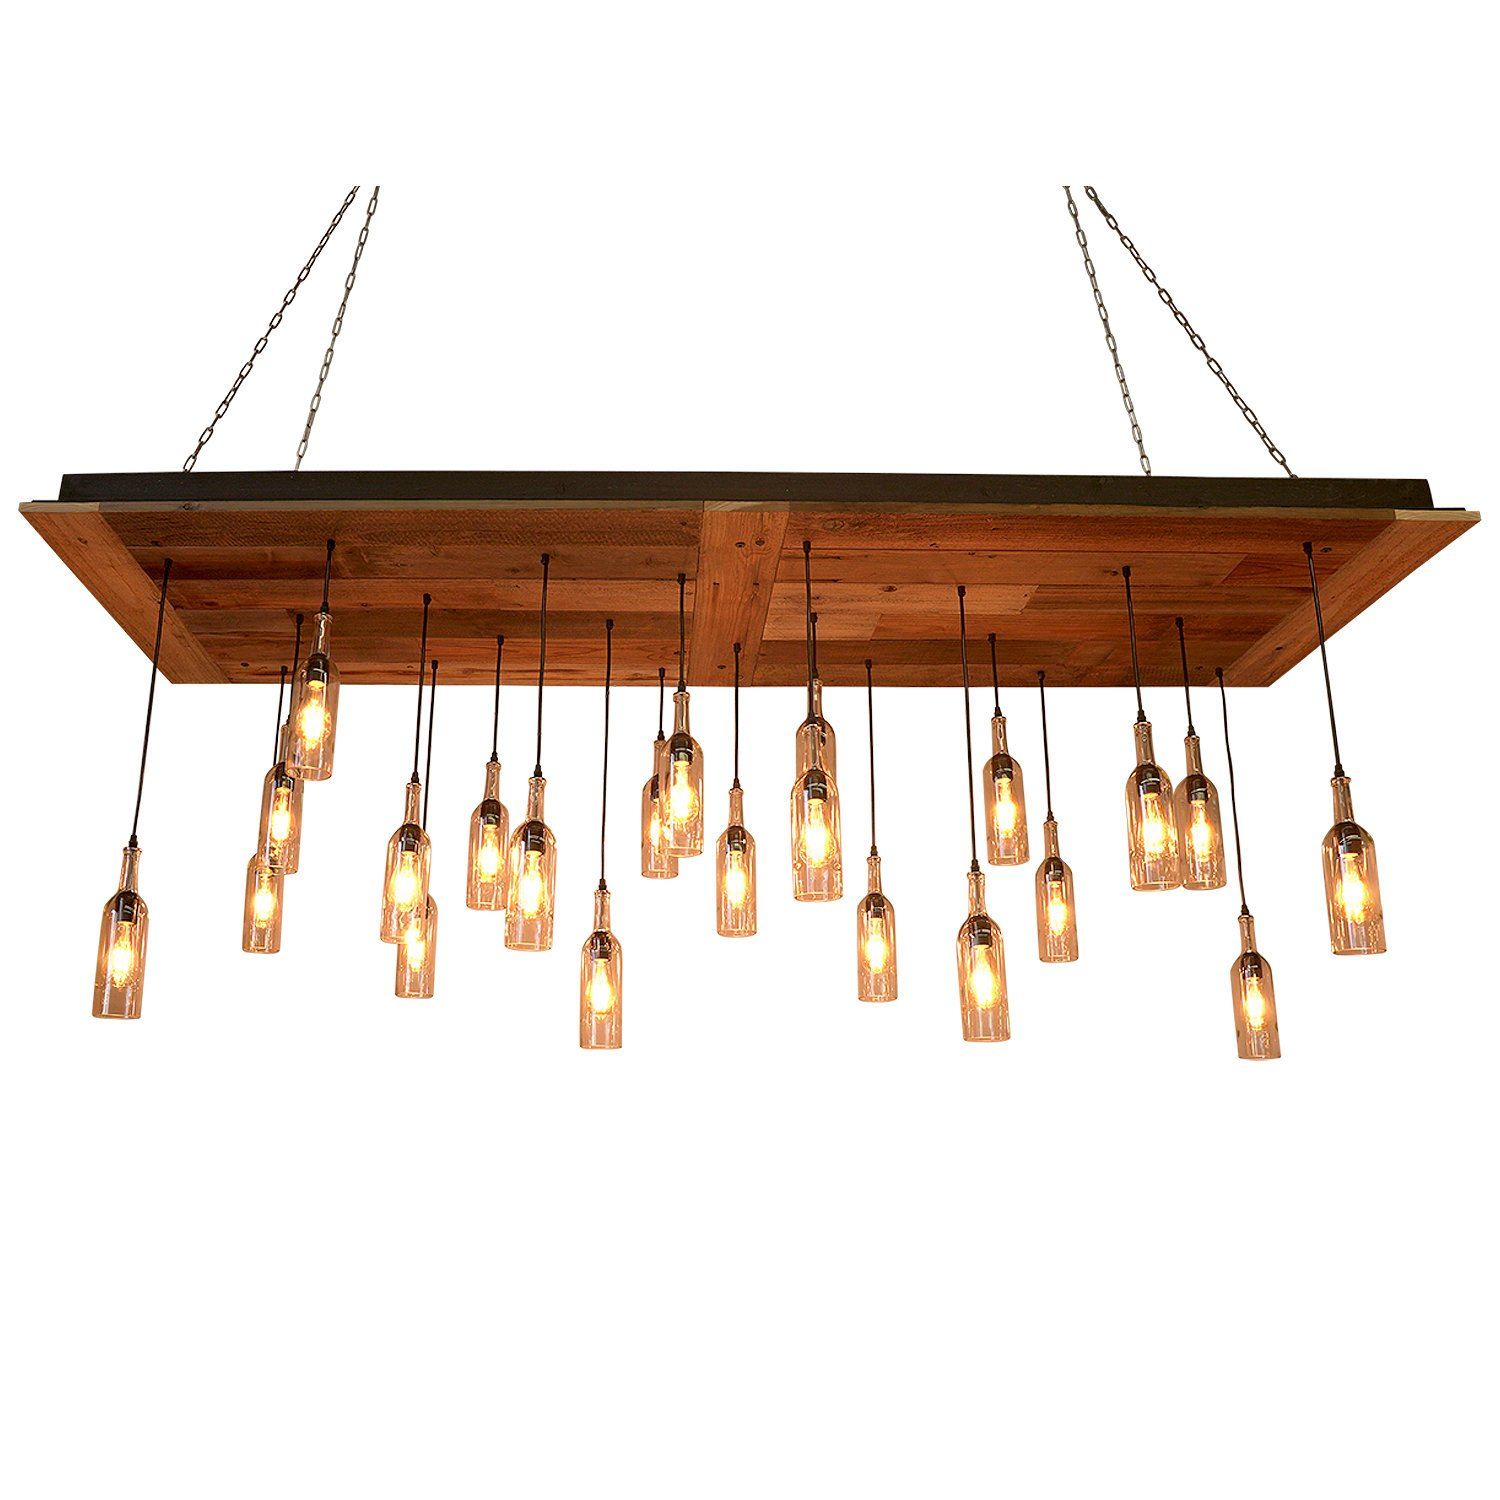 22 Wine Bottle Pendant Chandelier - Reclaimed Wood